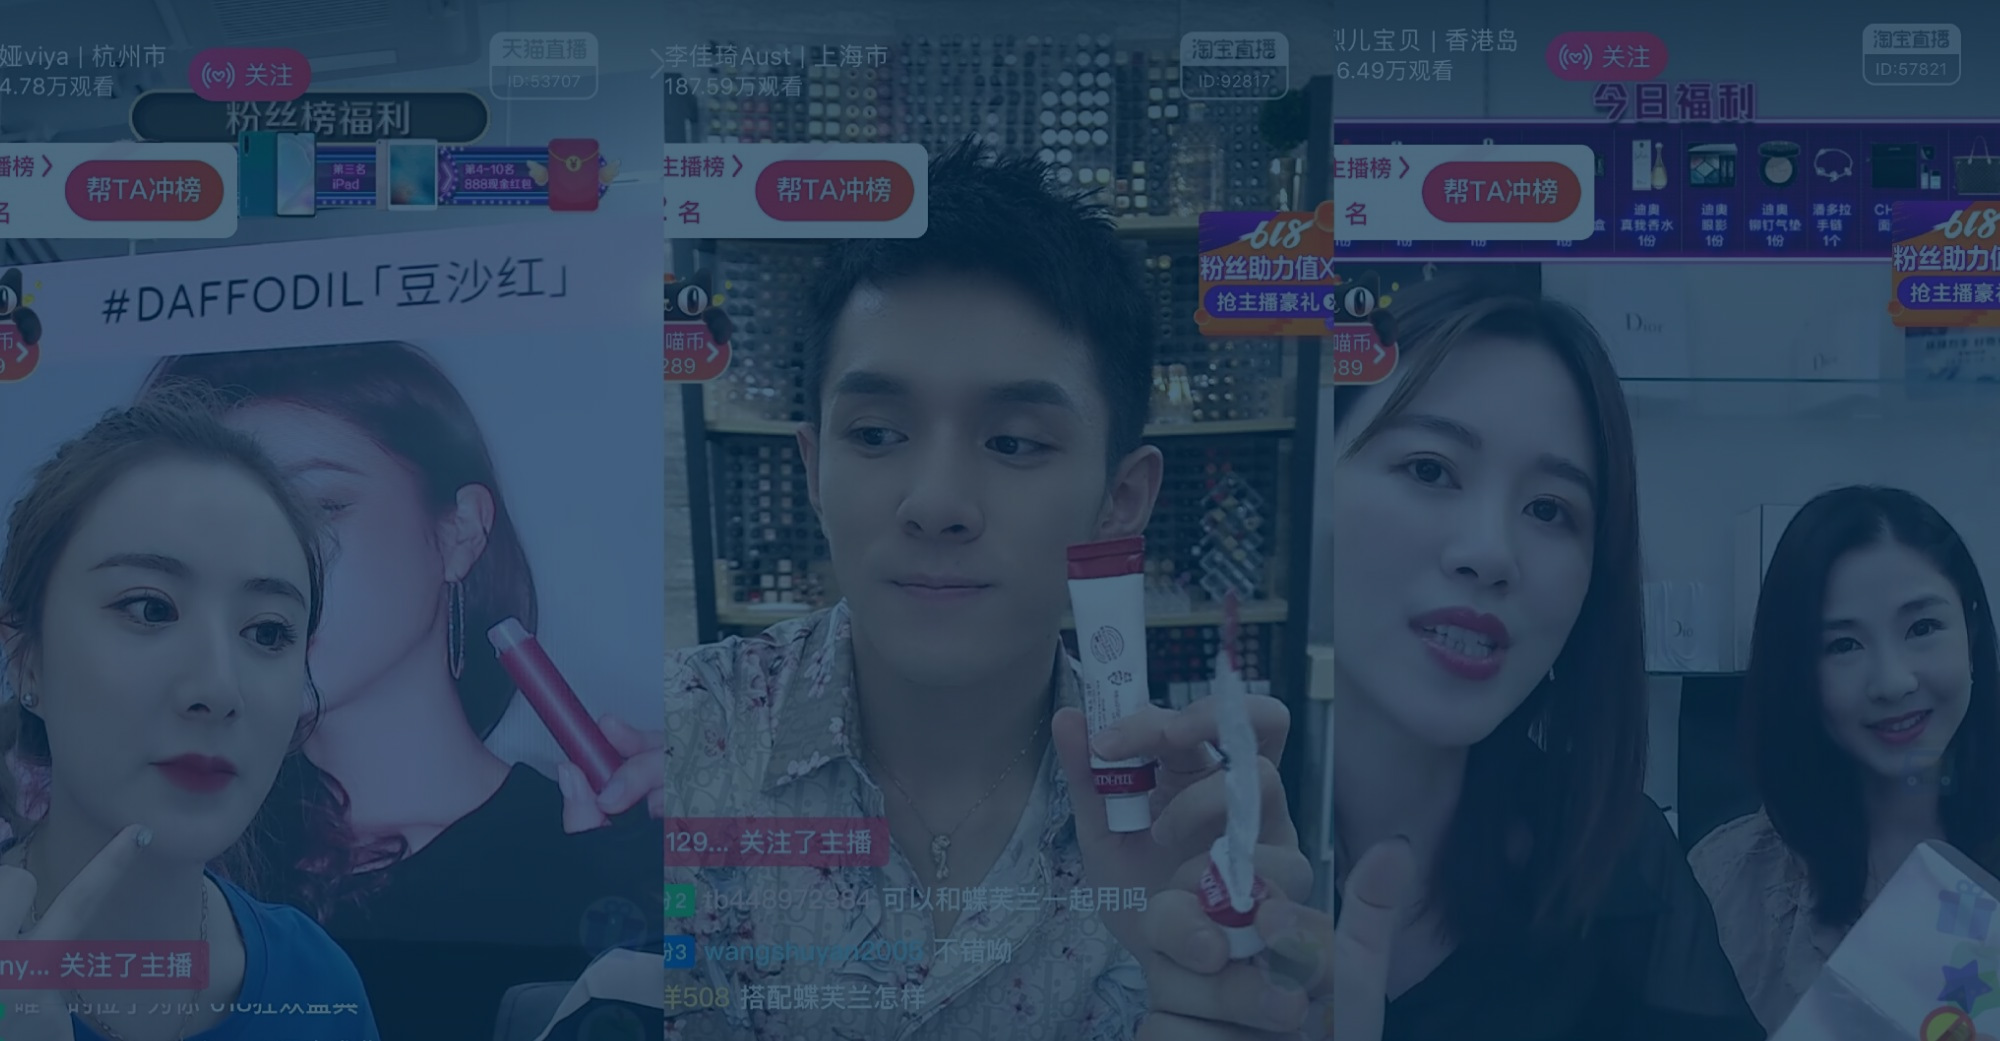 Social commerce in China: teleshopping redux